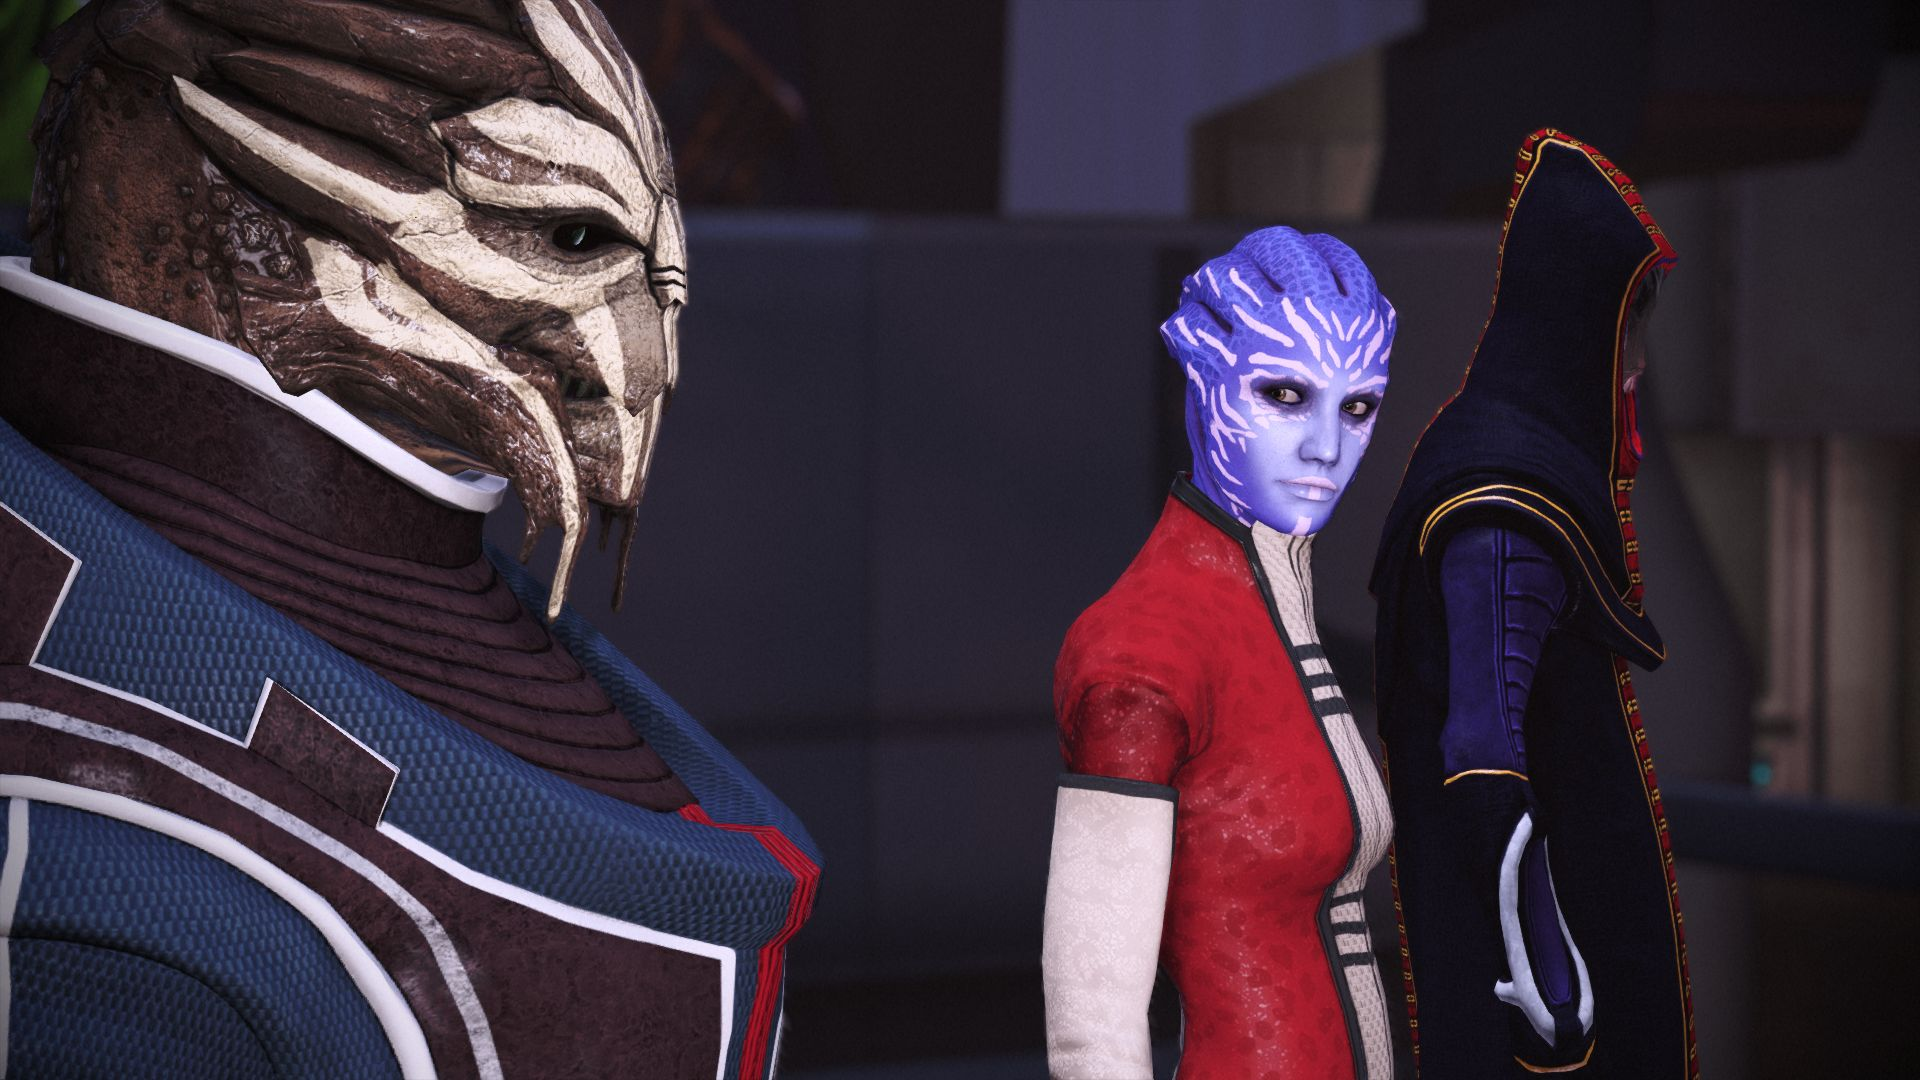 The Citadel Council hold court